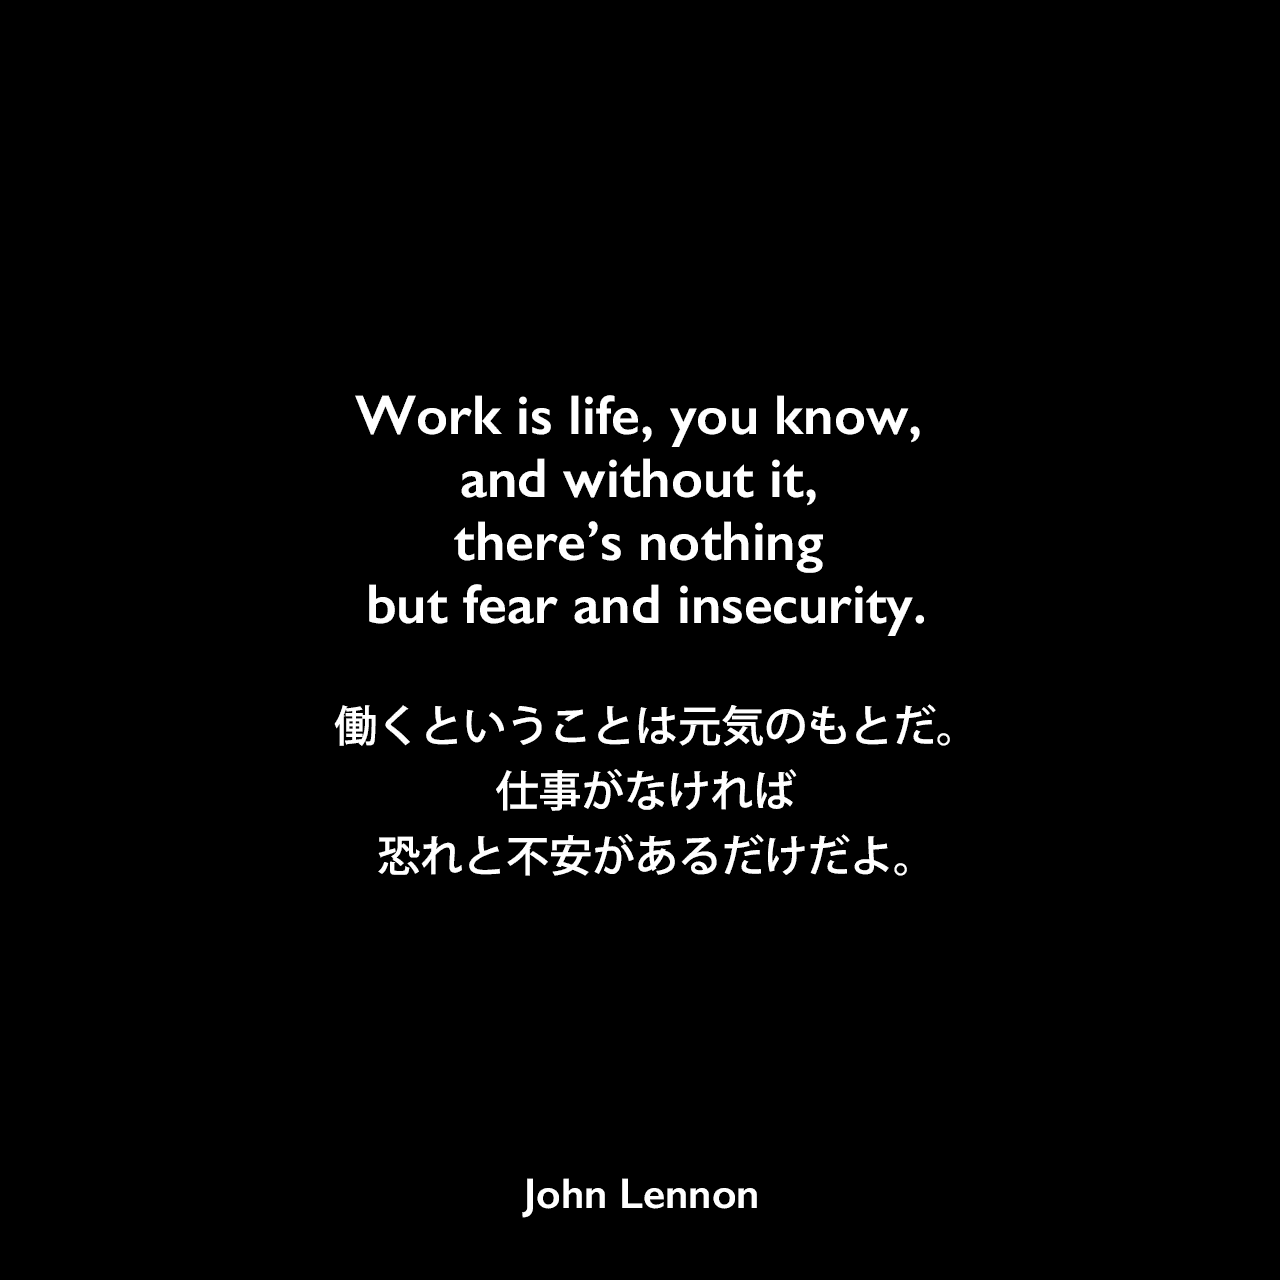 Work is life, you know, and without it, there's nothing but fear and insecurity.働くということは元気のもとだ。仕事がなければ恐れと不安があるだけだよ。John Lennon